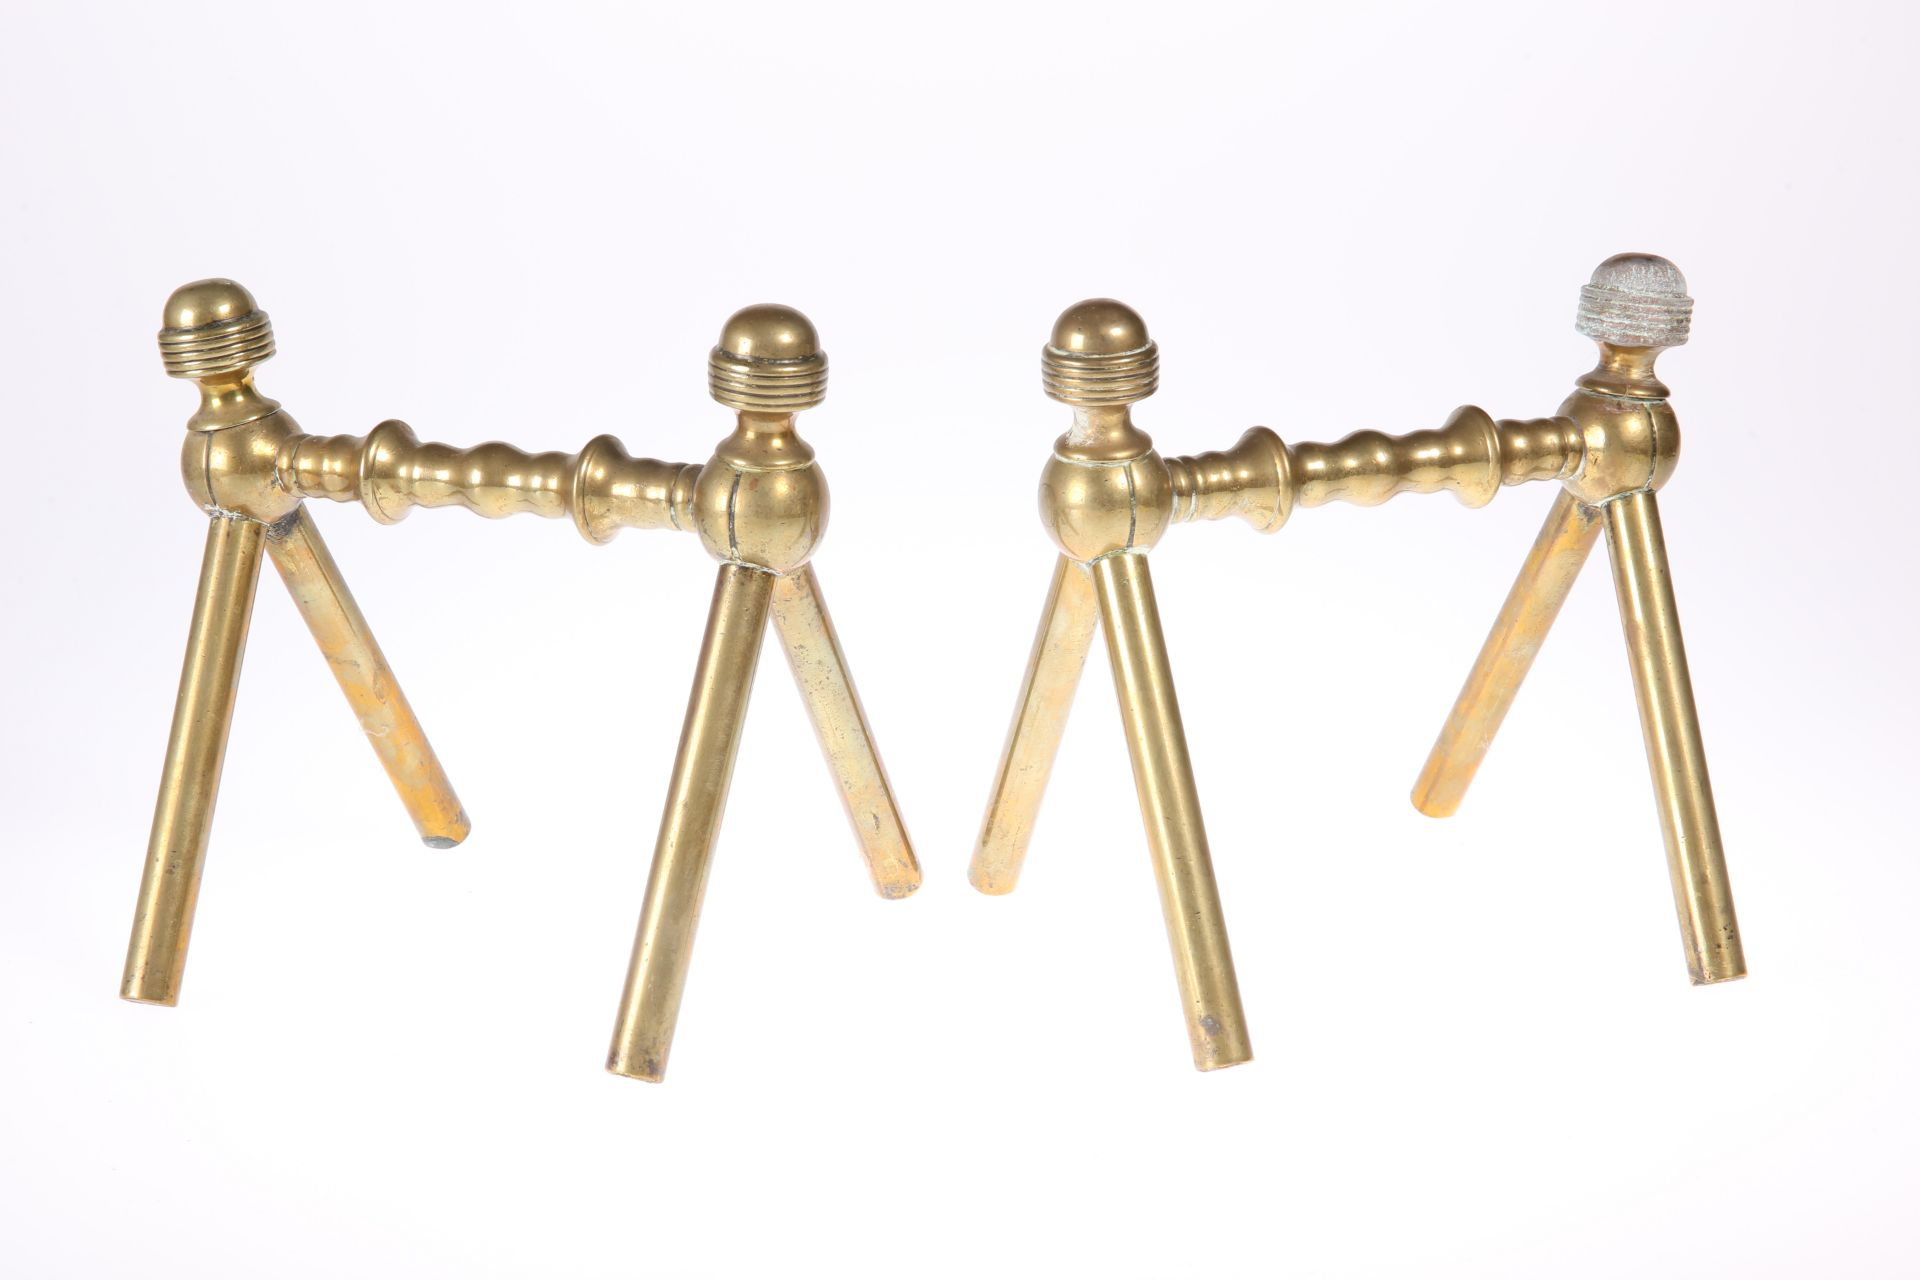 A PAIR OF AESTHETIC MOVEMENT BRASS FIREDOGS IN THE MANNER OF CHRISTOPER DRESSER, CIRCA 1880,